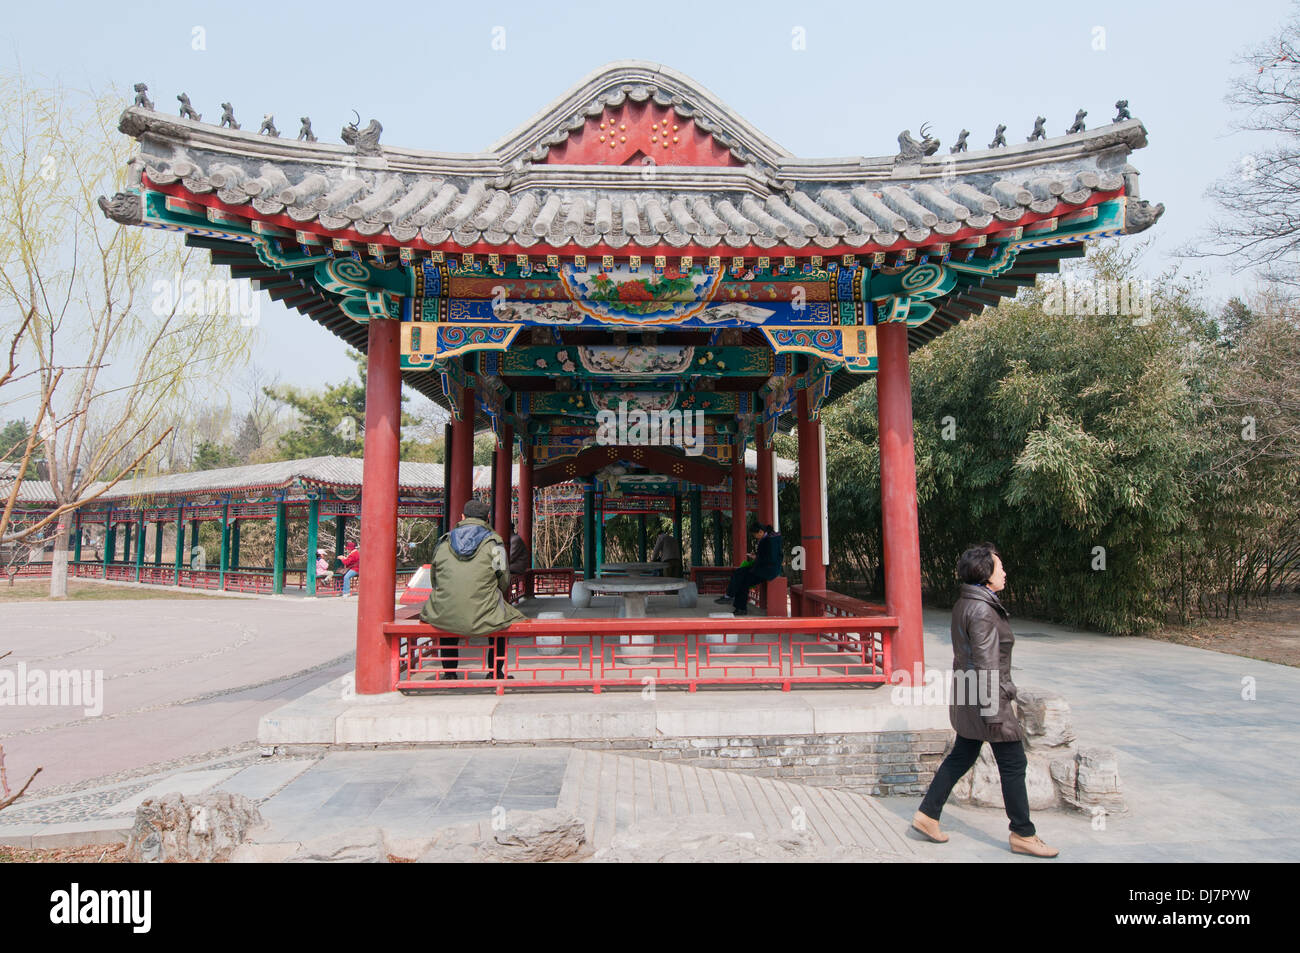 Traditional pavilion in Temple of the Earth area (also called Ditan Park) in Beijing, China - Stock Image